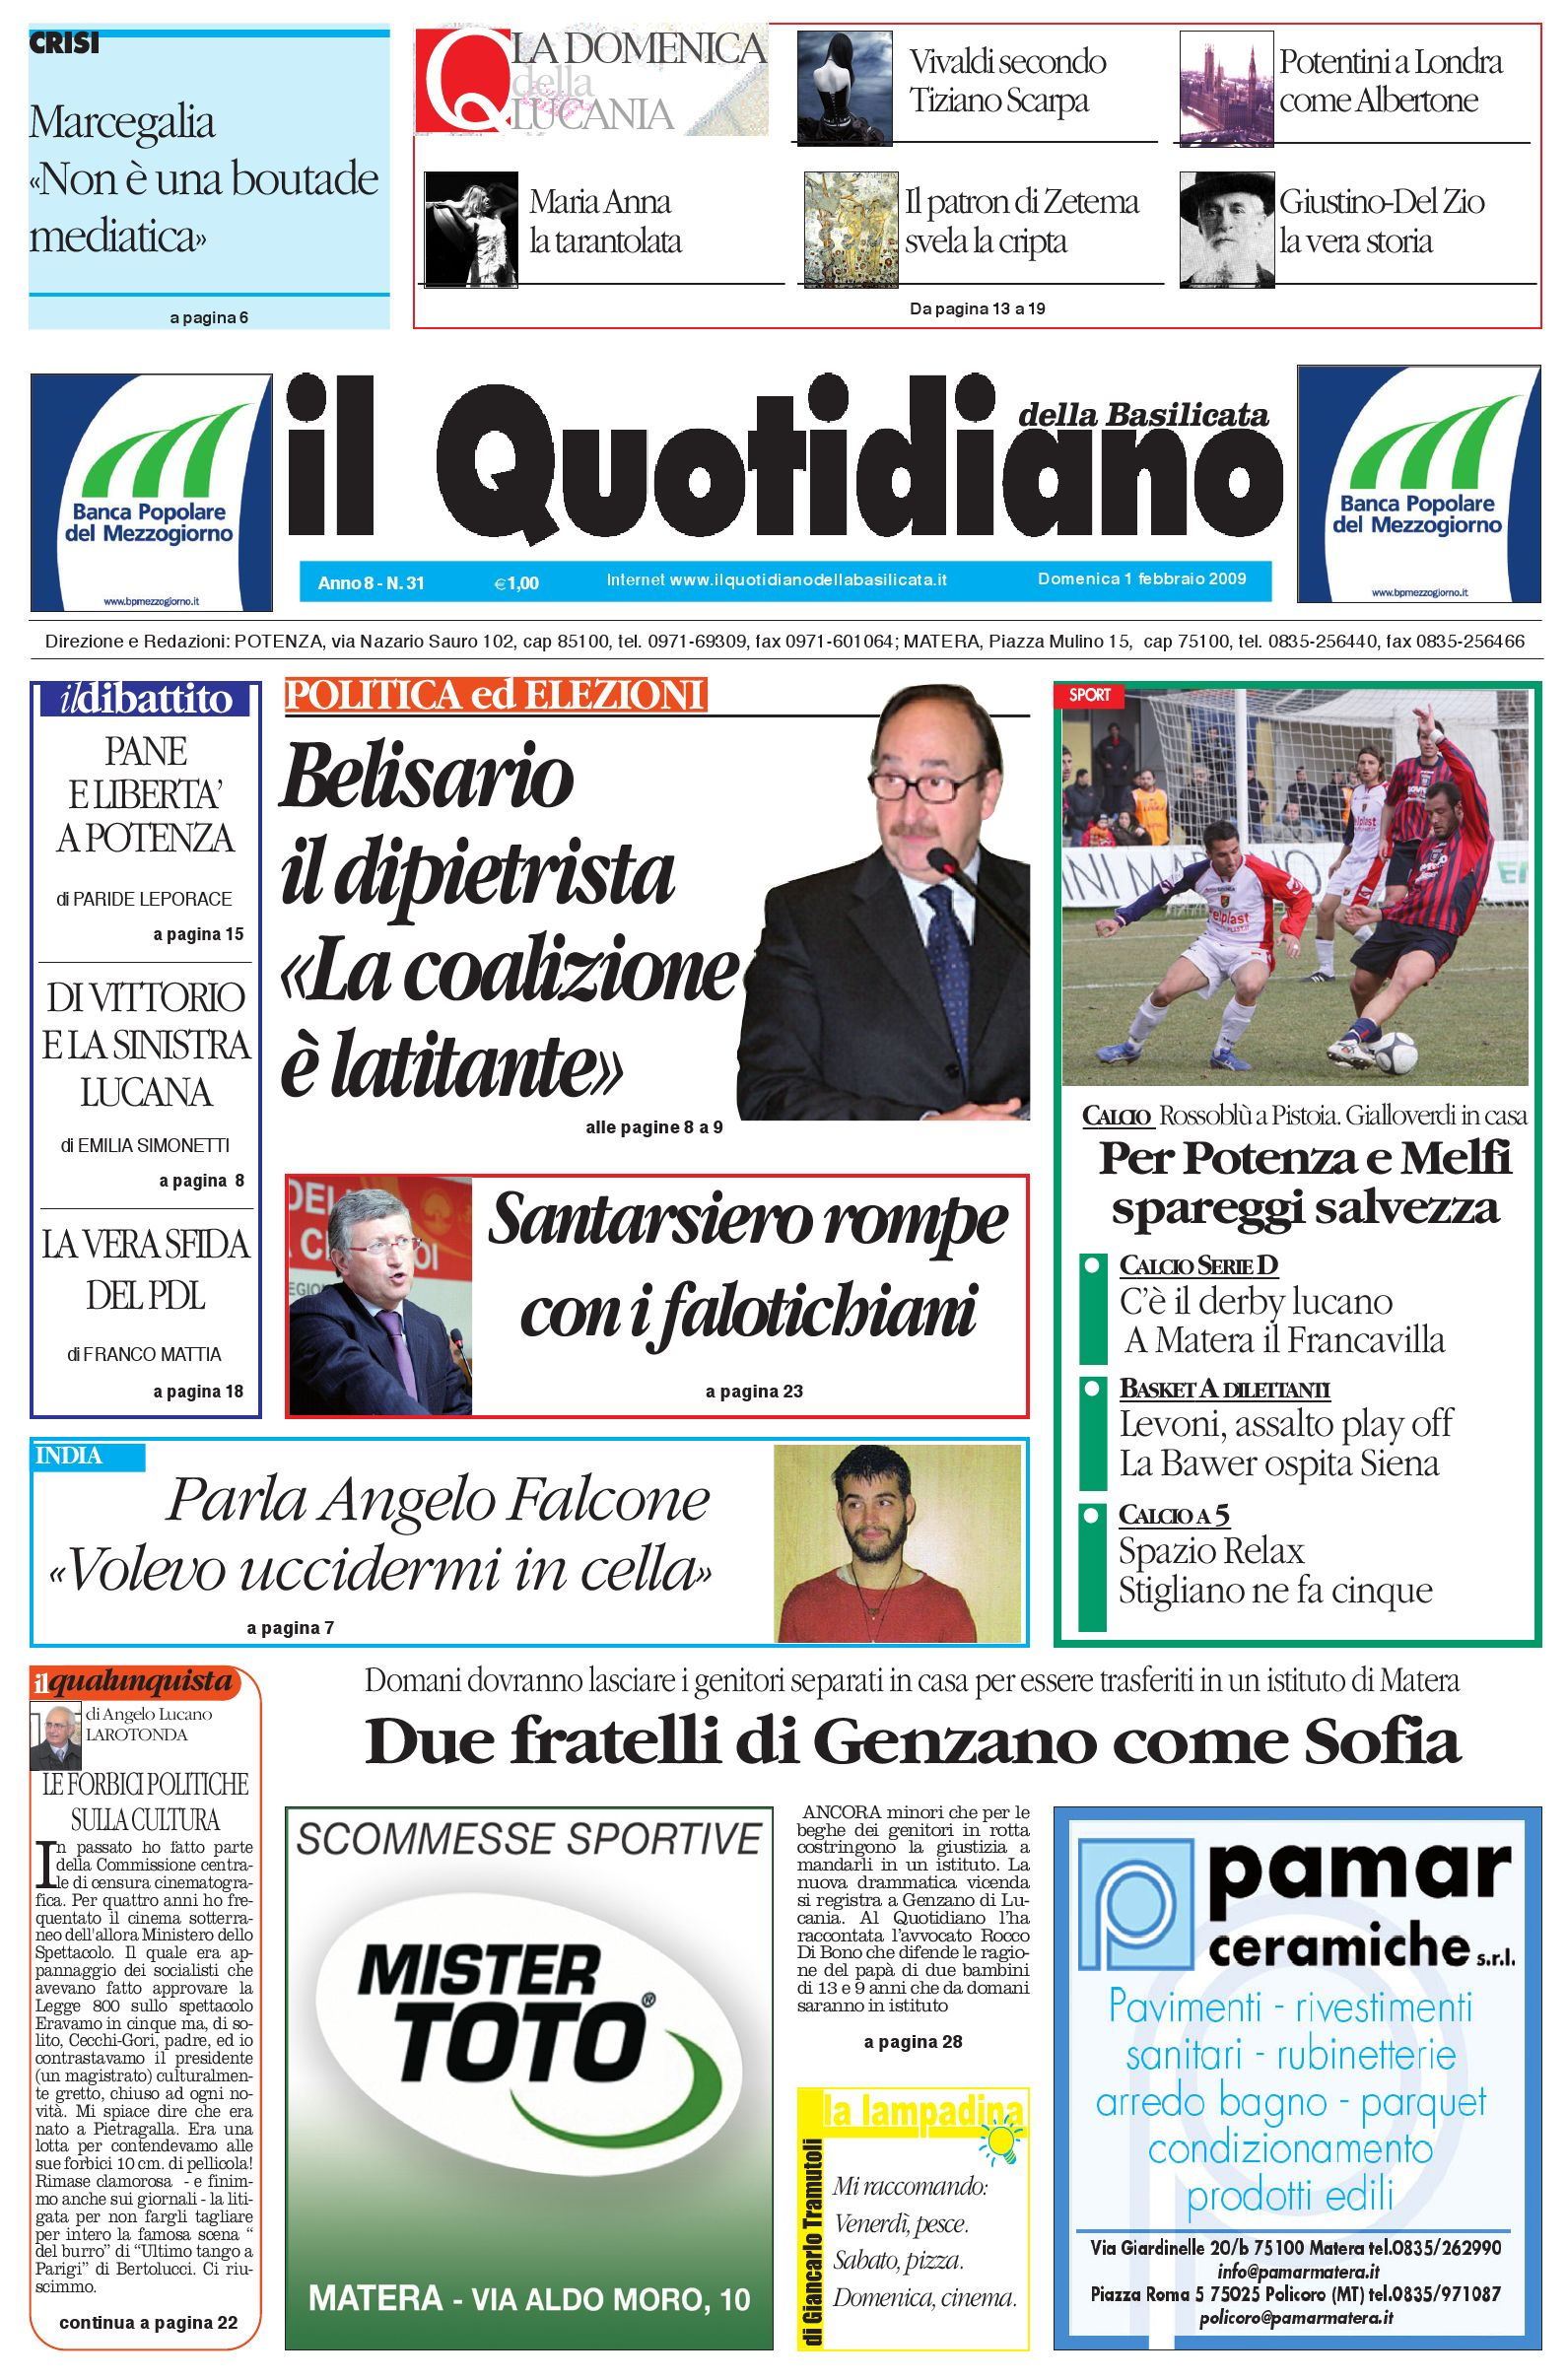 QB090315 by Antonio Carlucci - issuu b0779c86174